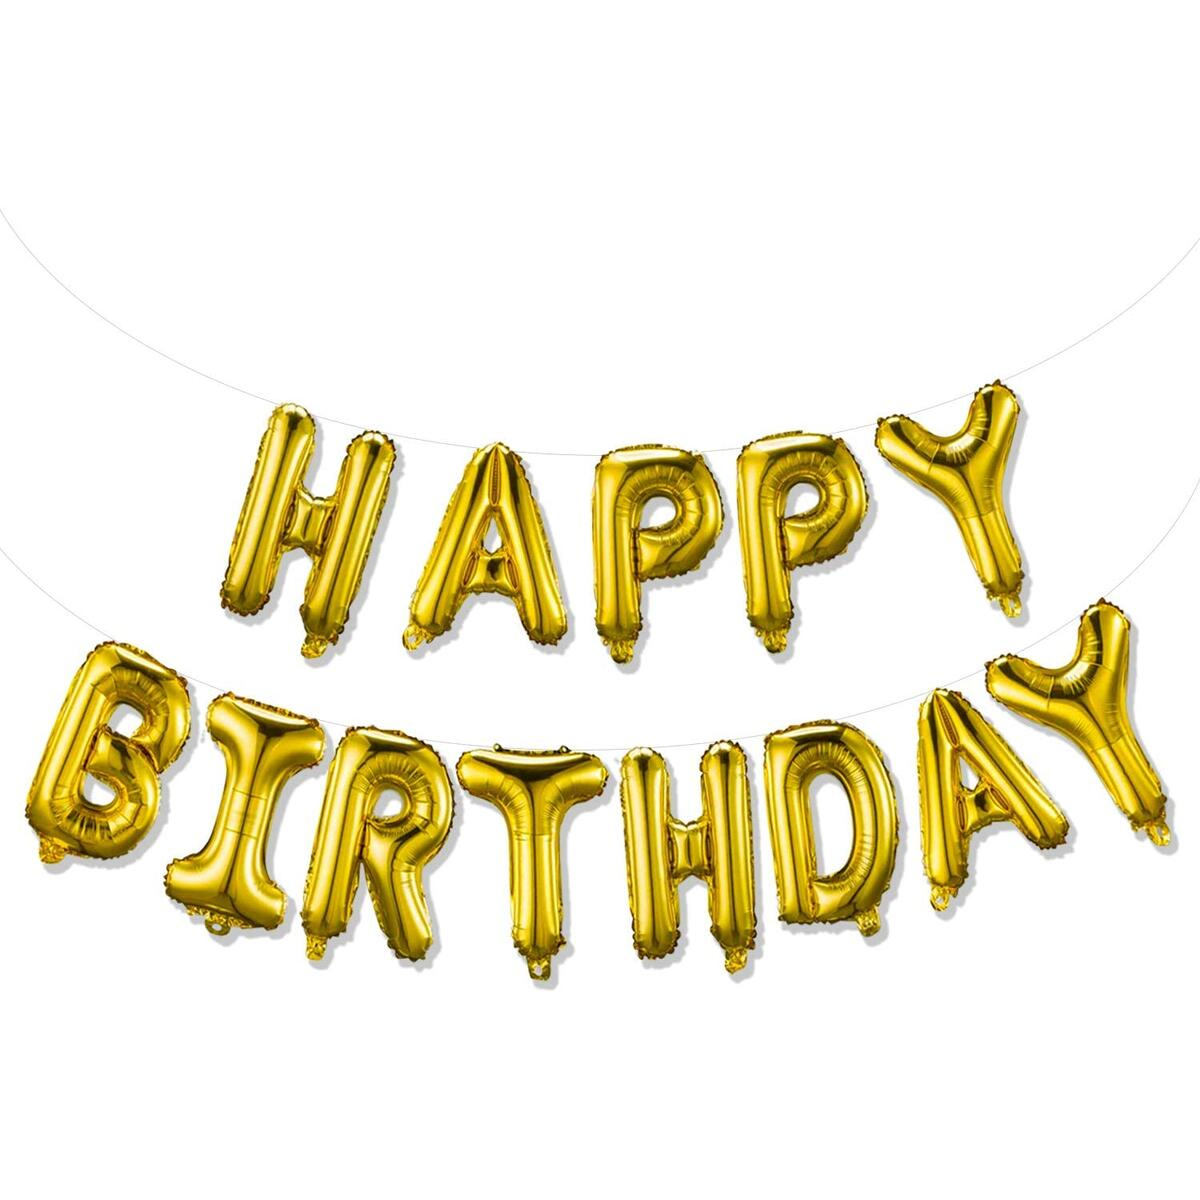 Happy Birthday Balloons Banner & Mylar Foil Letters Inflatable (3D Gold Lettering) Birthday Party Decorations for Girls and Boy Reusable (Gold)